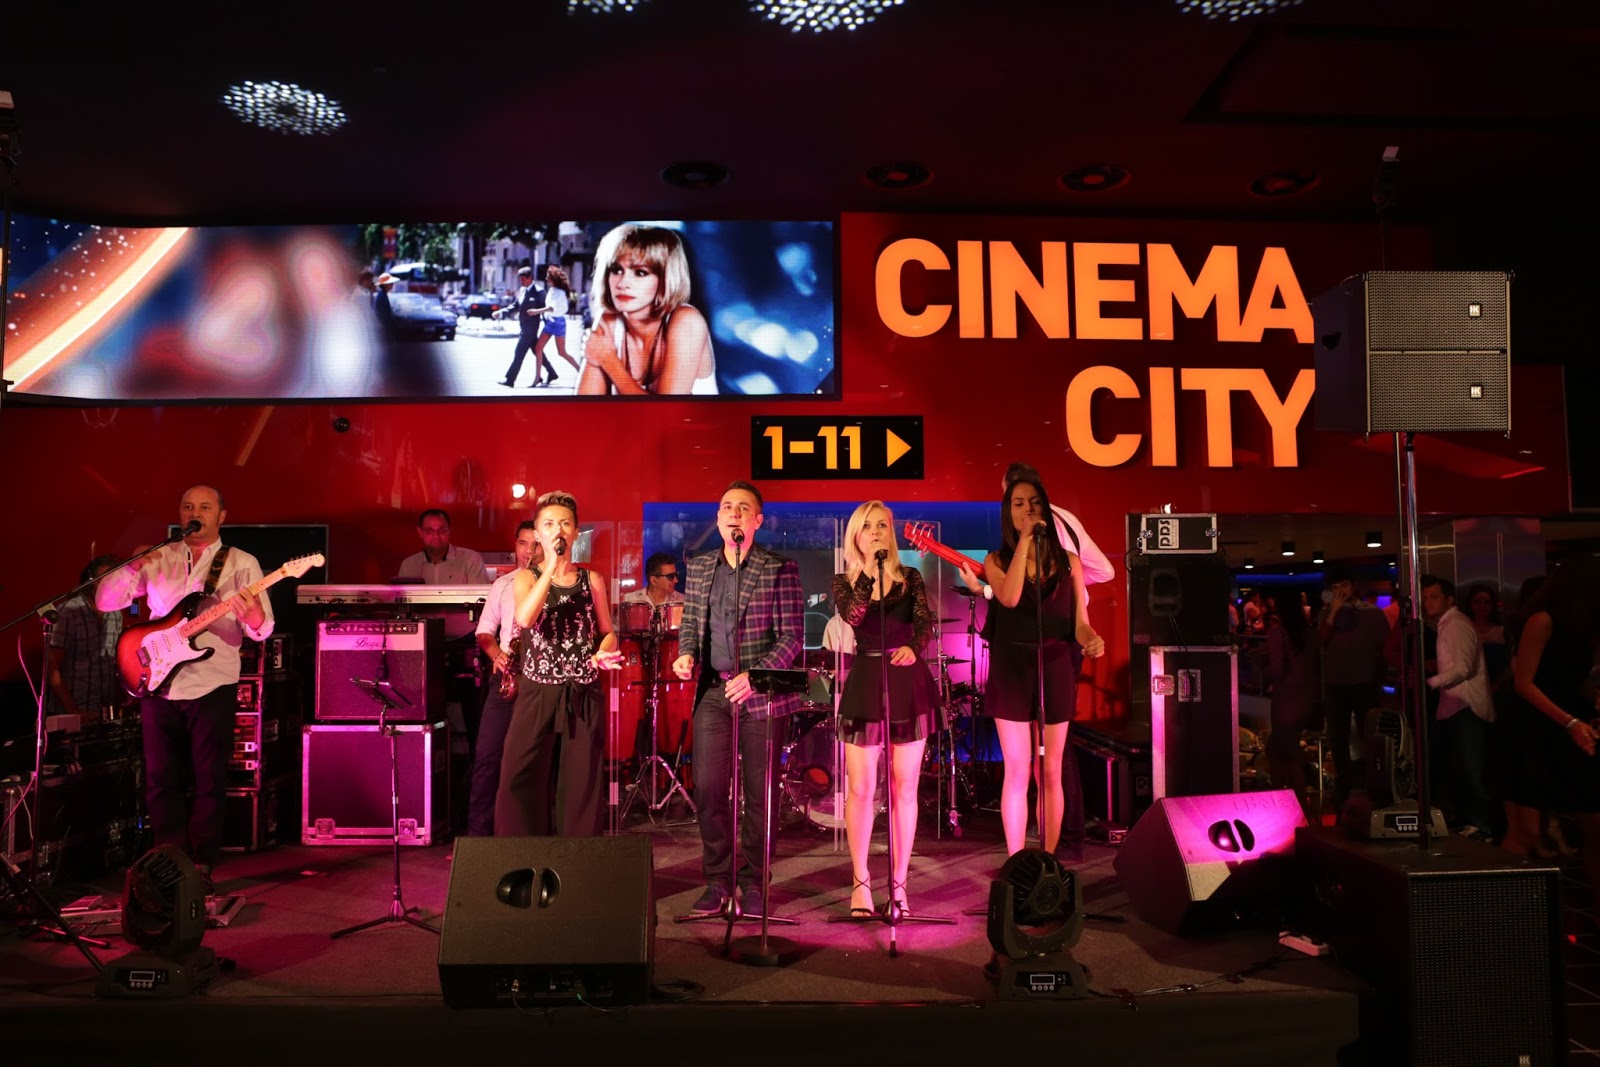 Cinema City deschis în ParkLake Shopping Center multiplex București - Ranevents Comm - Silviu Pal Blog